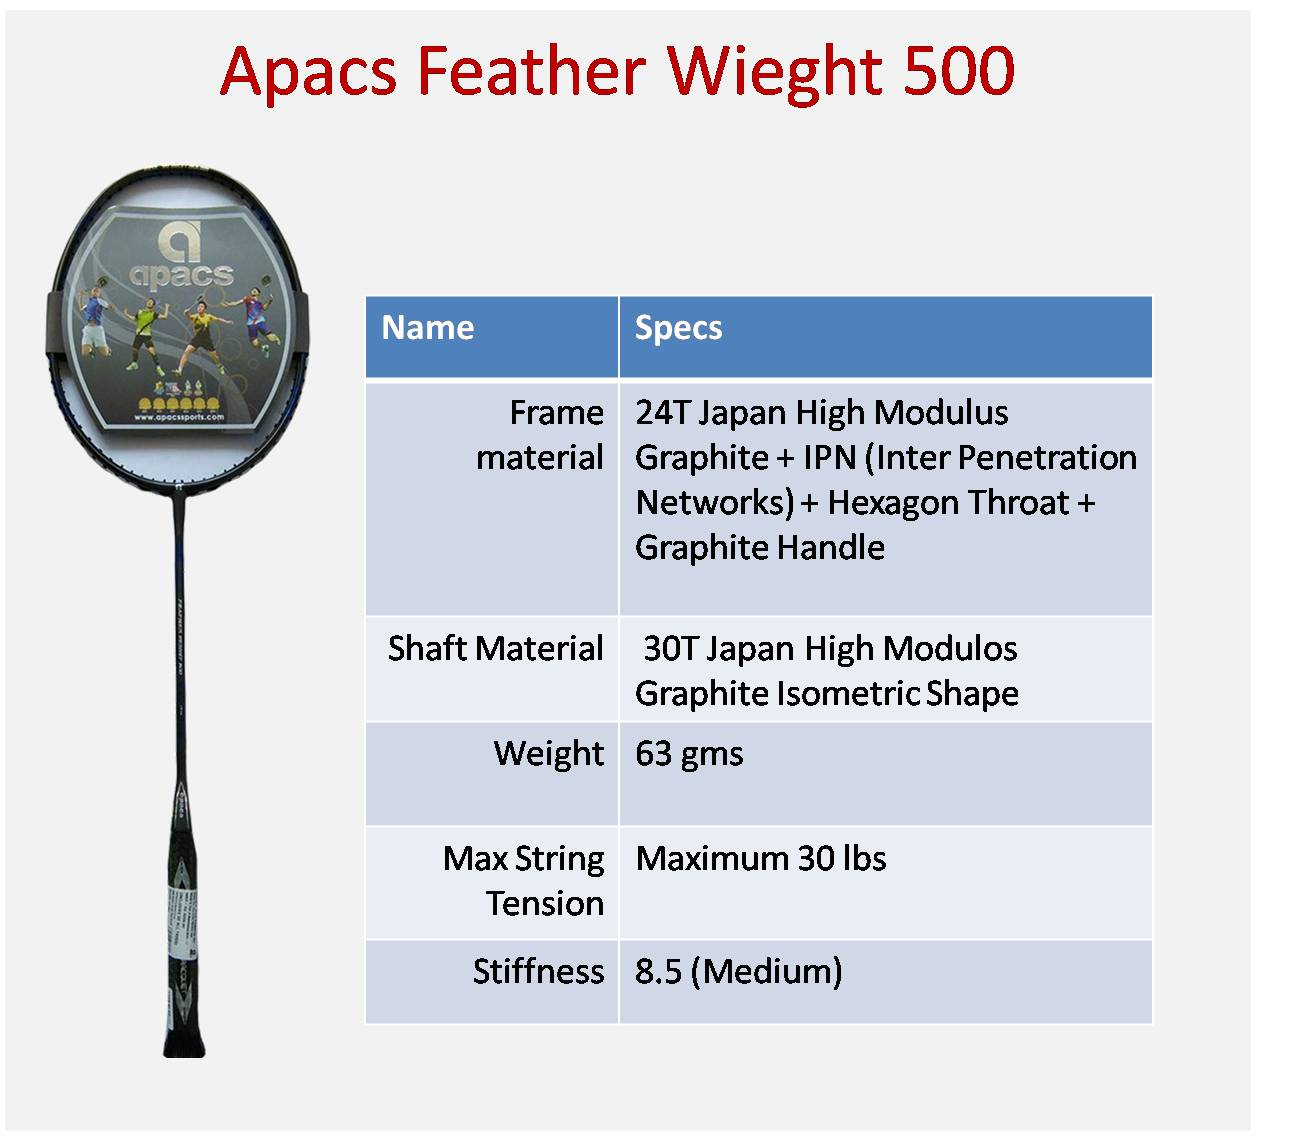 Apacs_Feather_Wieght_500